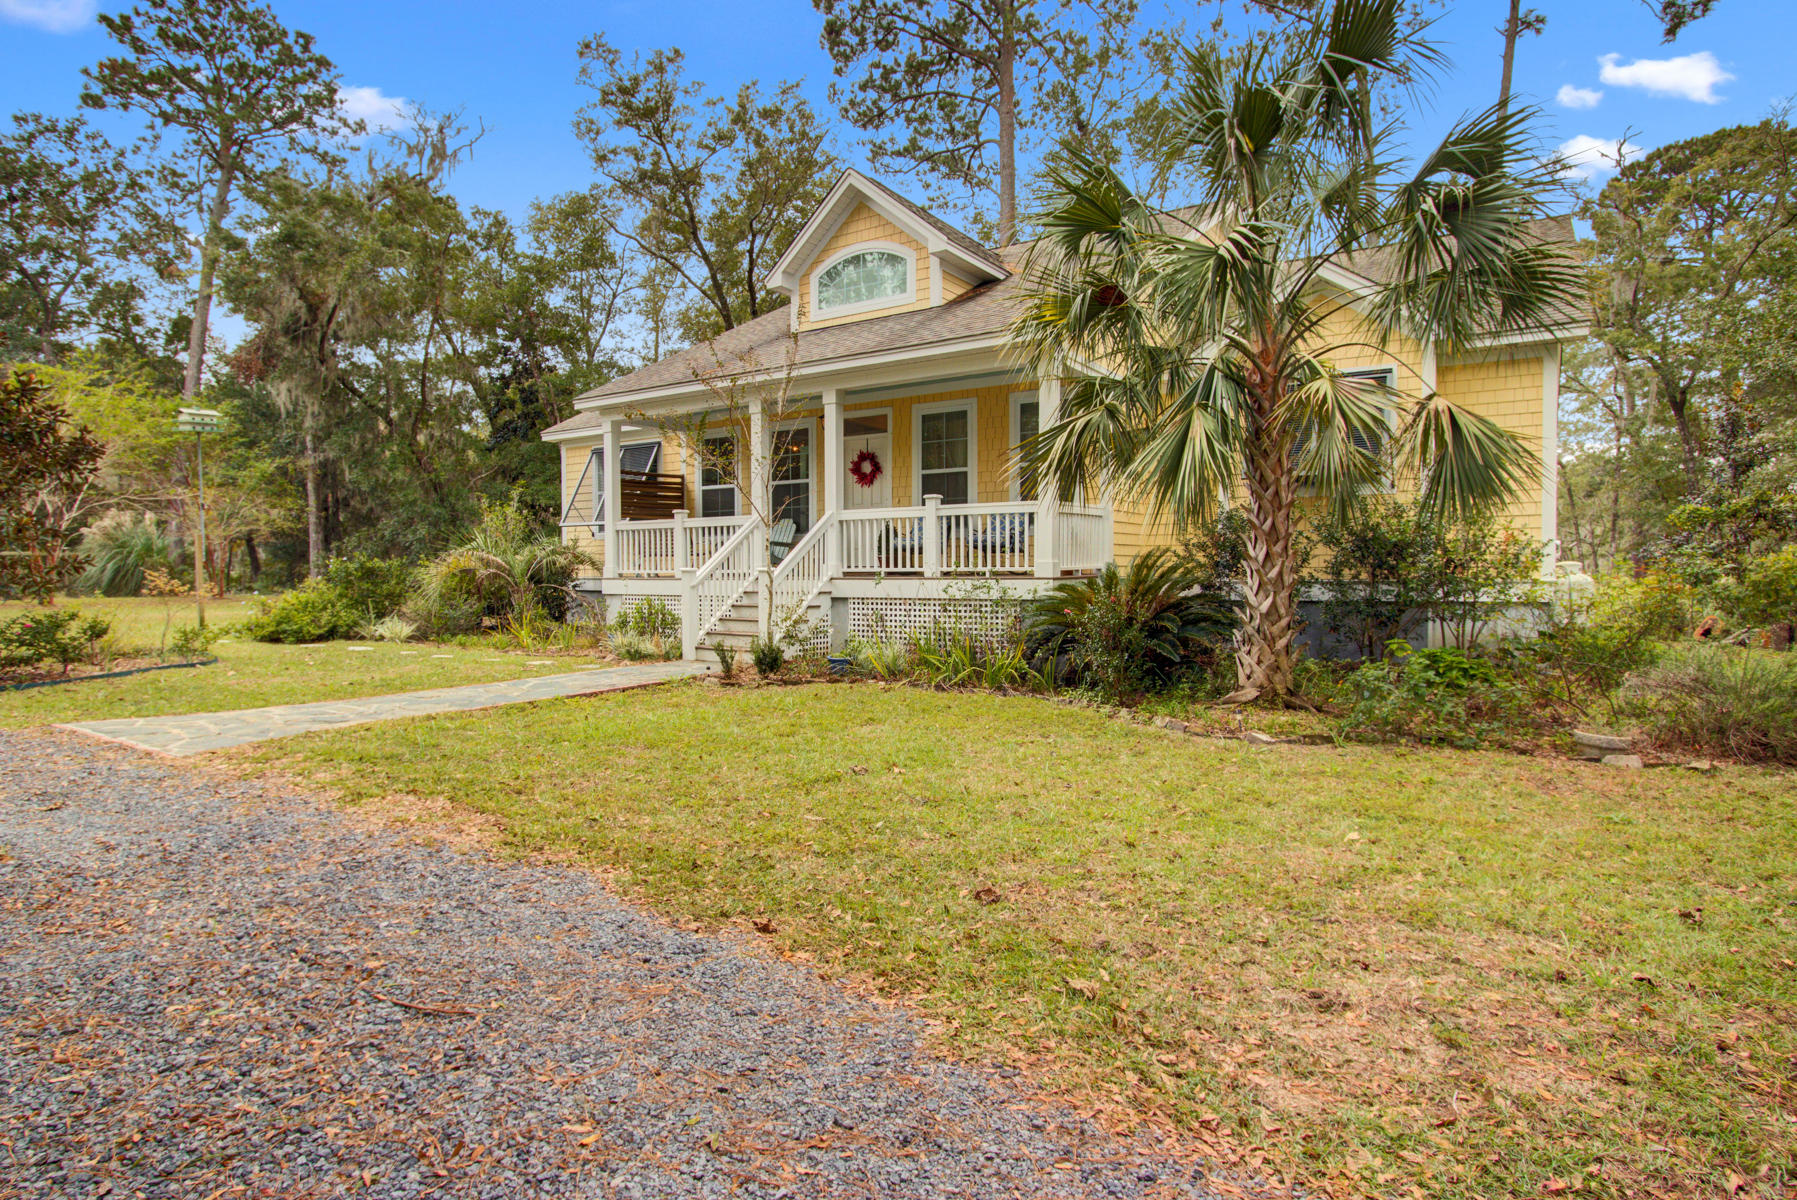 Hickory Hill Estates Homes For Sale - 3339 Hickory Hill, Johns Island, SC - 29